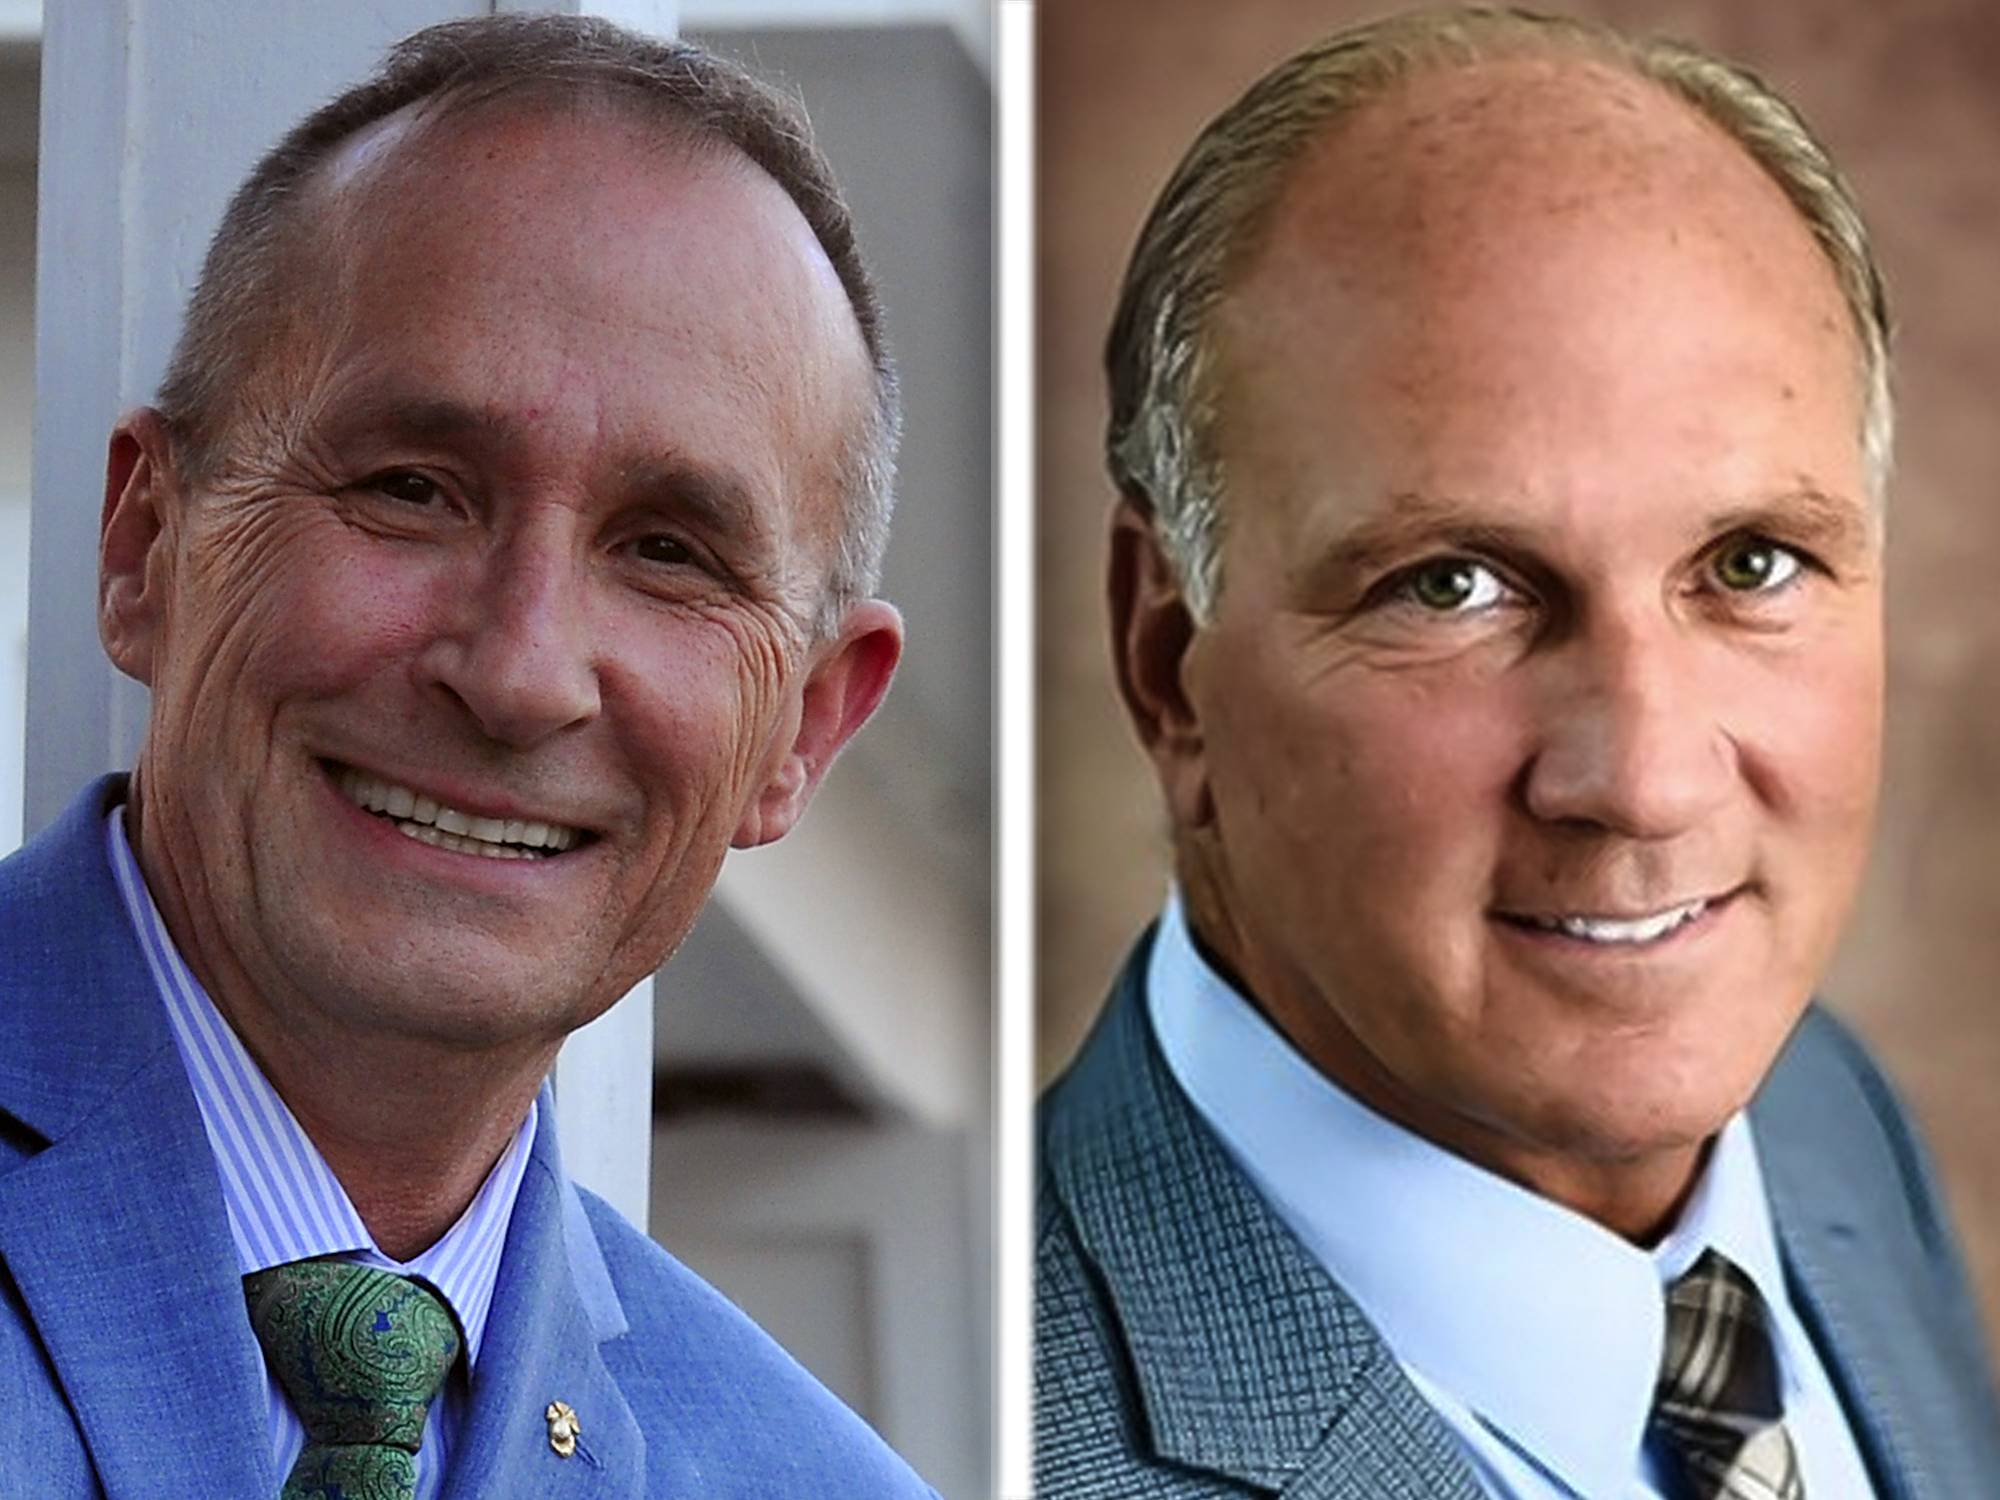 Naperville mayor candidates offer different approaches to economic development